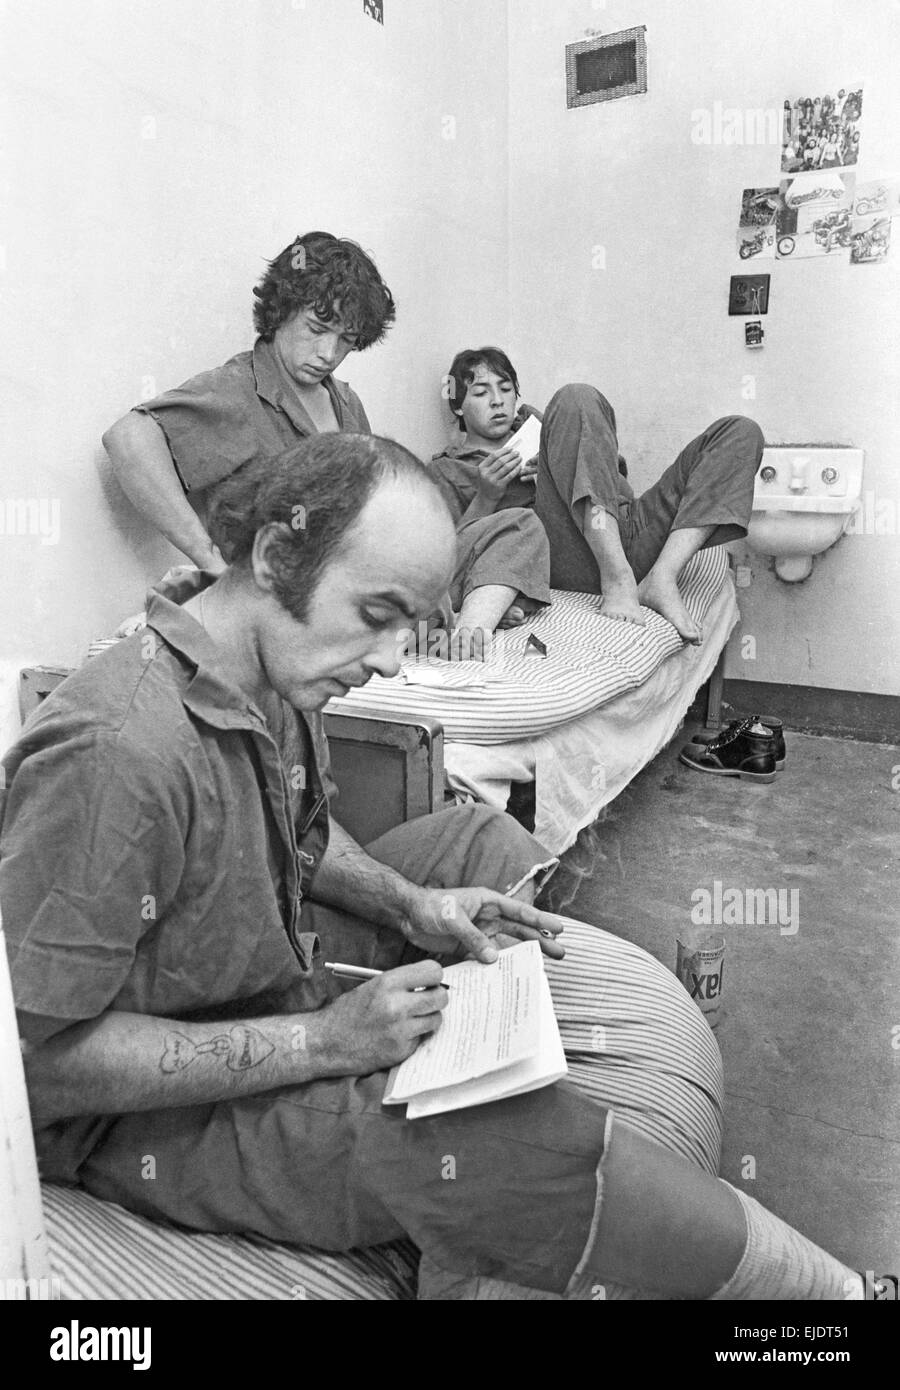 Maximum security prisoners in overcrowded cells at the New Mexico State Penitentiary near Santa Fe, New Mexico, - Stock Image